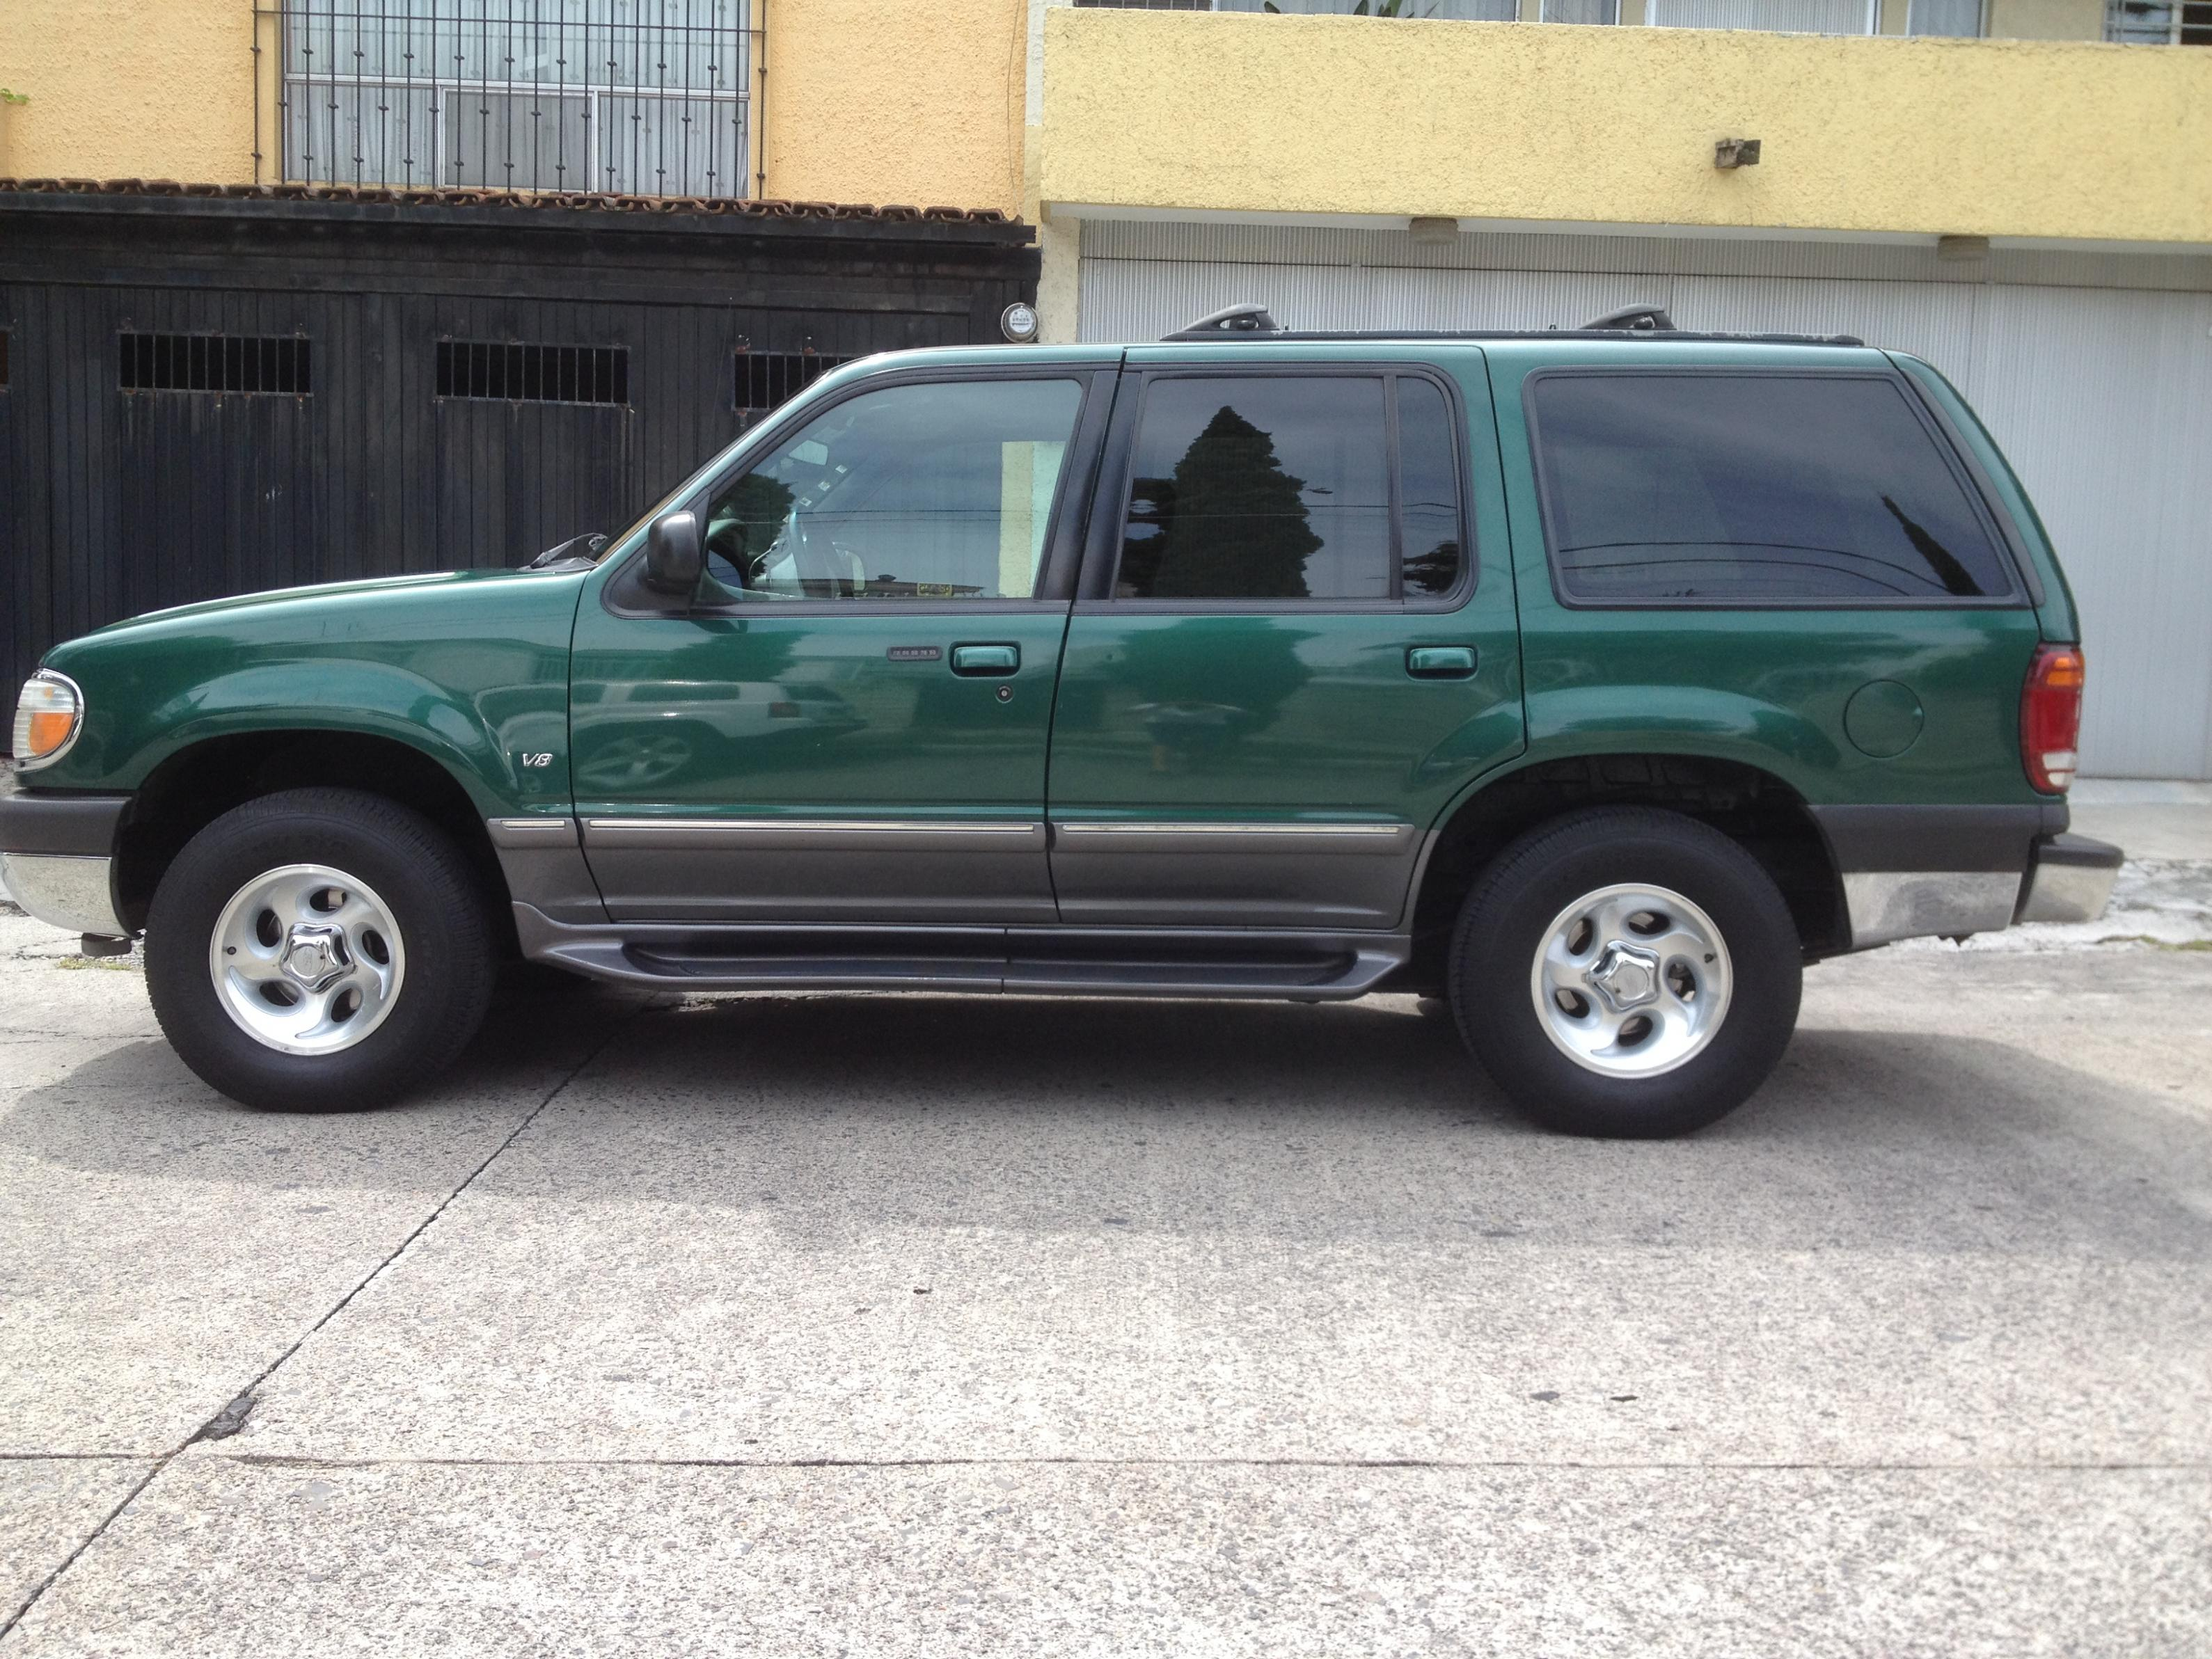 2000 ford explorer xlt for sale!!! | uag medical school classifieds